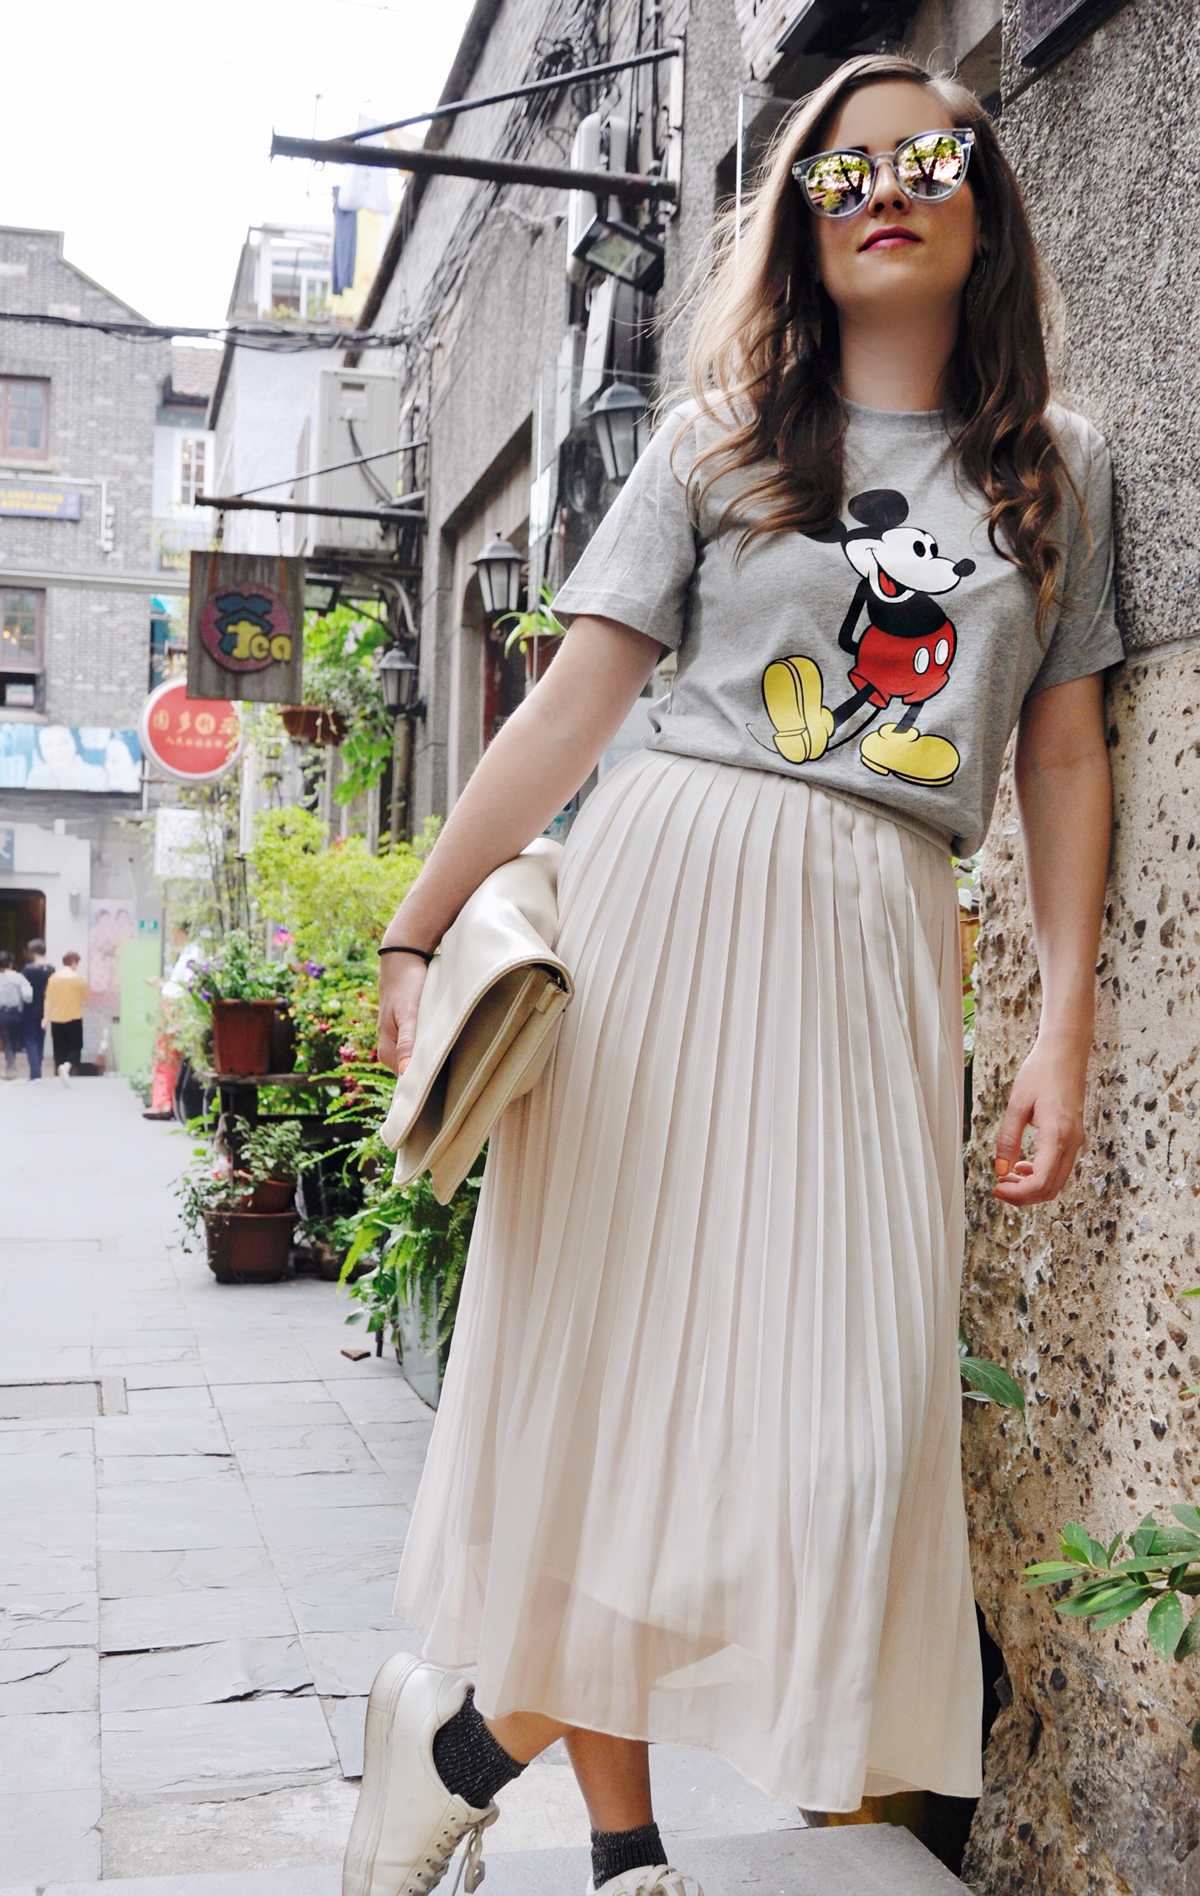 Fashionblogger Andrea Steiner from Strawberries 'n' Champagne wearing in Shanghai a long skirt from Uniqlo with a Mickey Mouse shirt also from Uniqlo. The sunglasses is from Muji and the clutch from H&M.